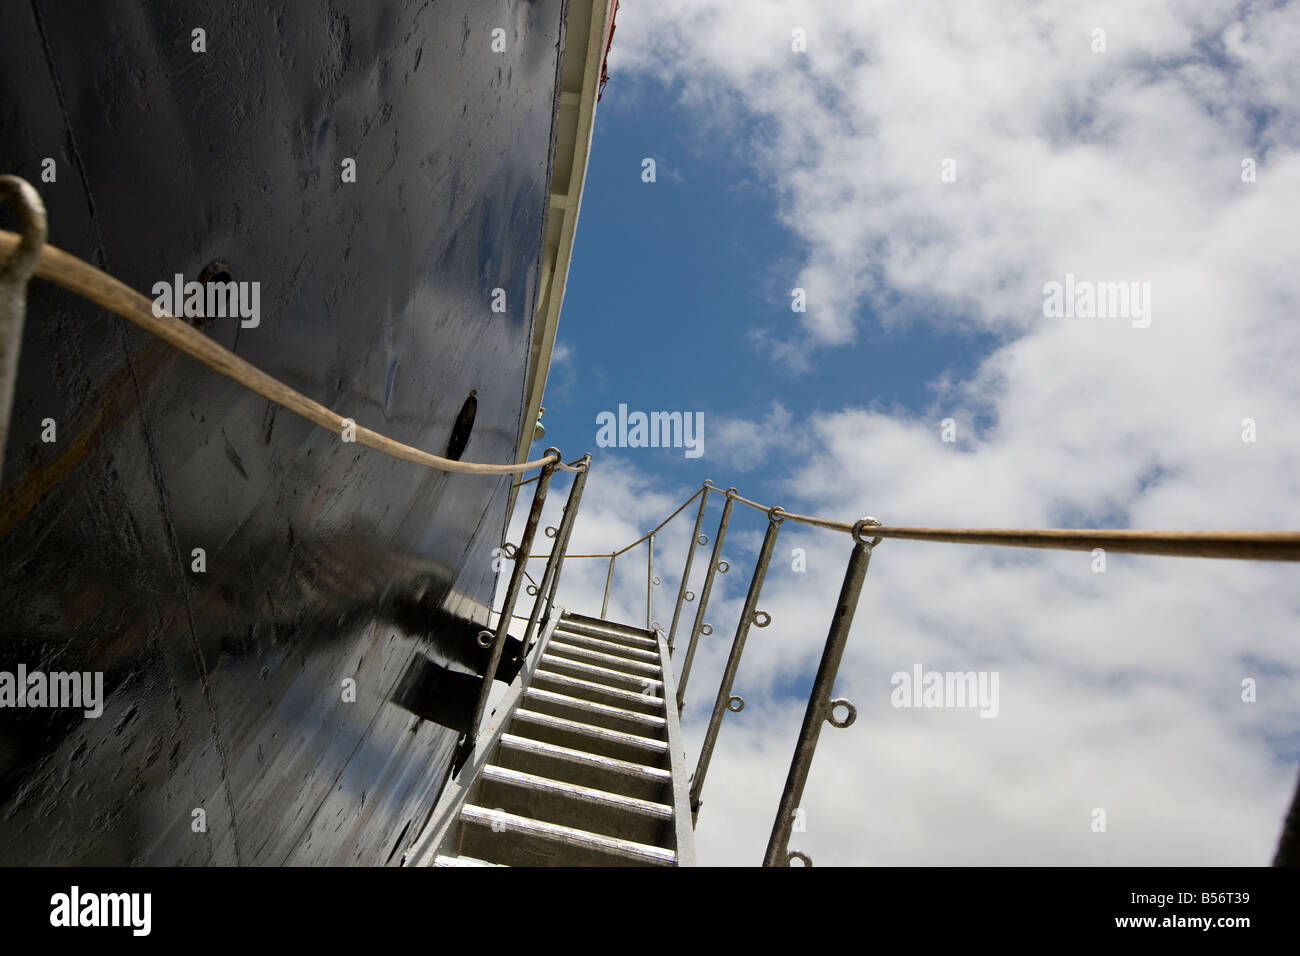 stairs leading to ship, on the side of a ship hull. - Stock Image